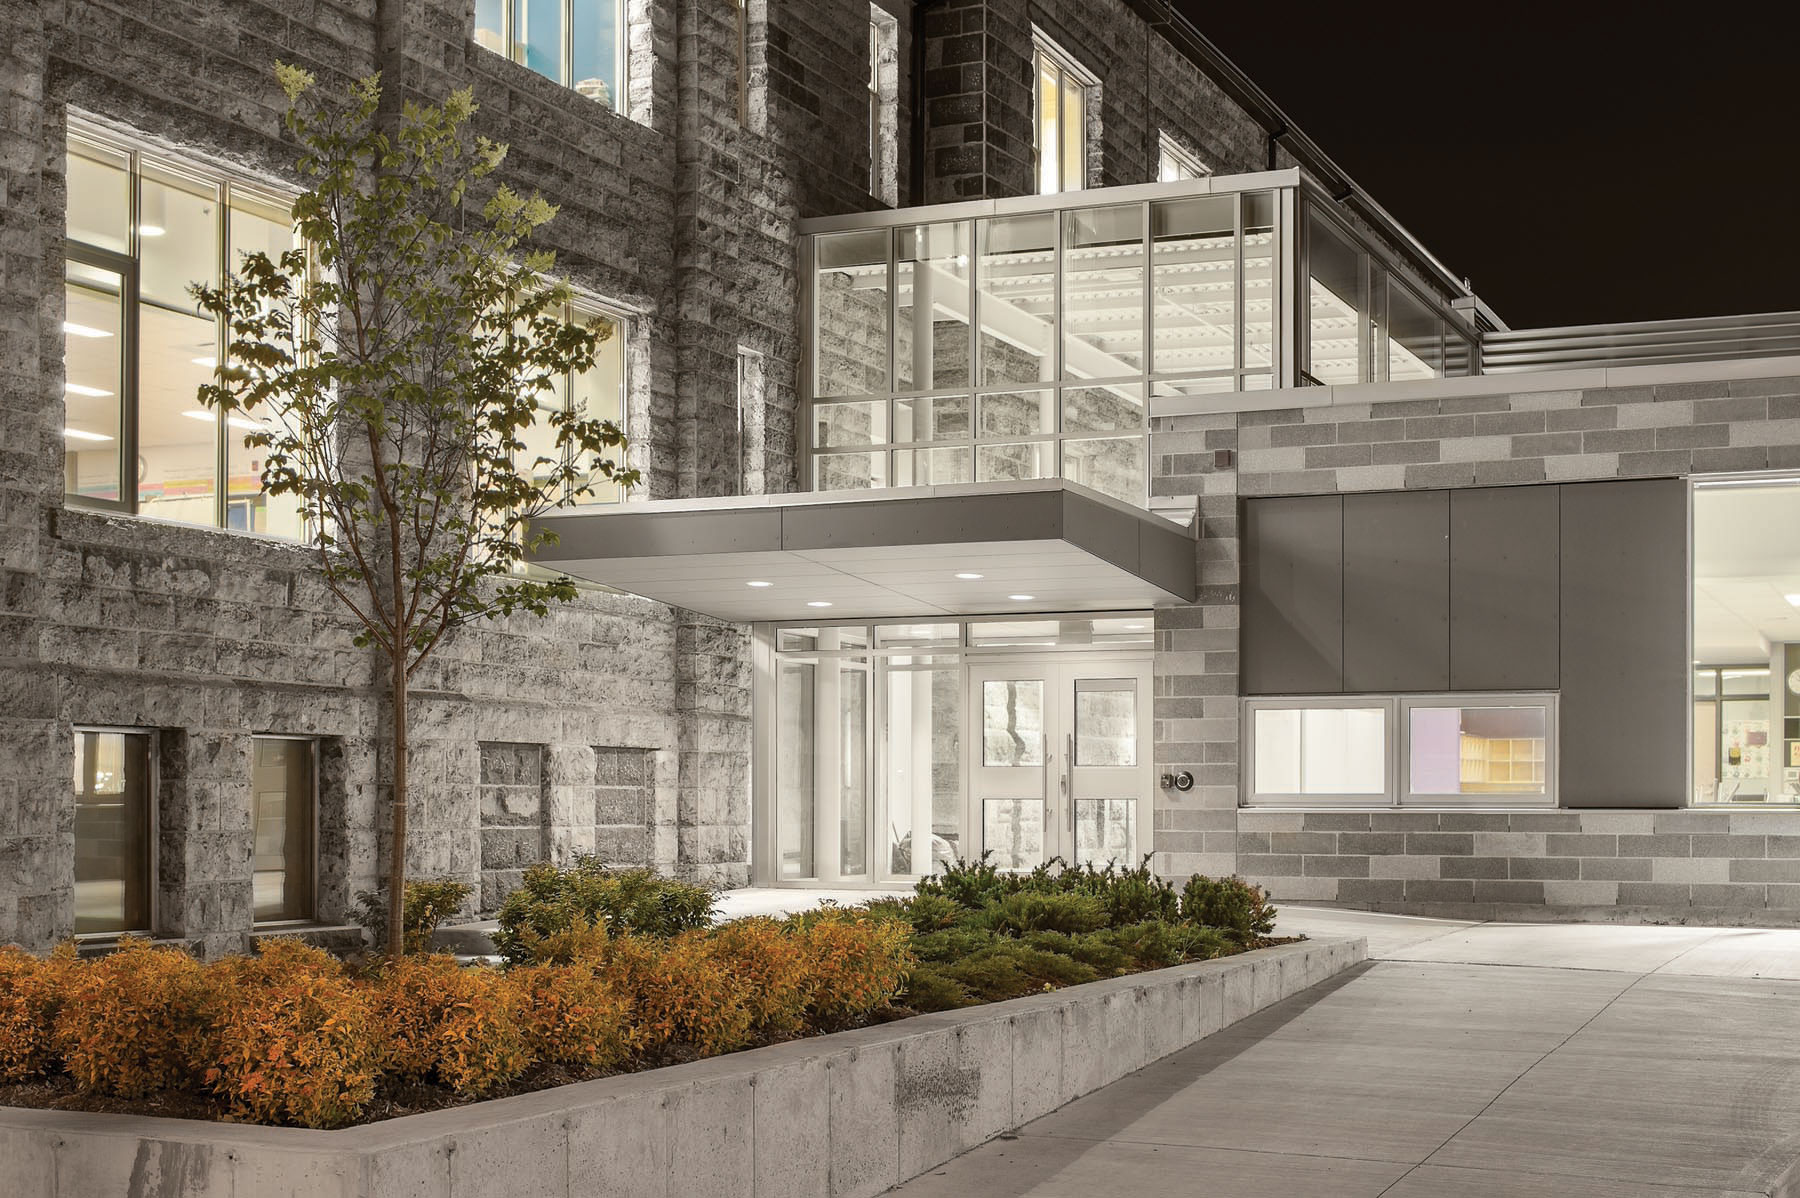 Night view of illuminated double height front entrance with roof canopy connecting original stone façade with new addition